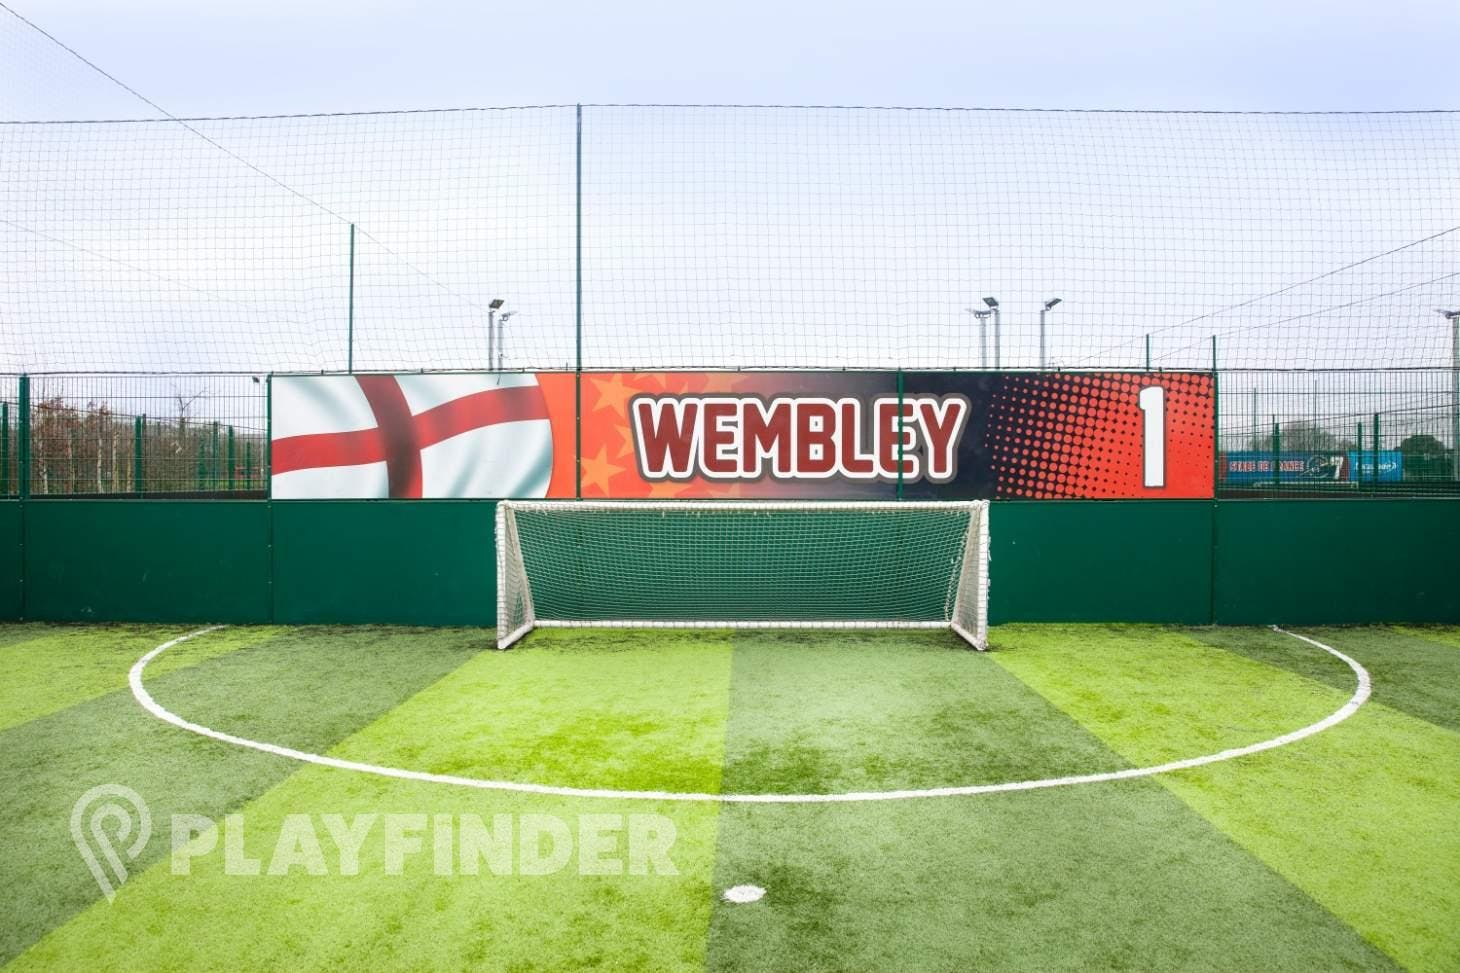 Goals Portsmouth 5 a side | 3G Astroturf football pitch